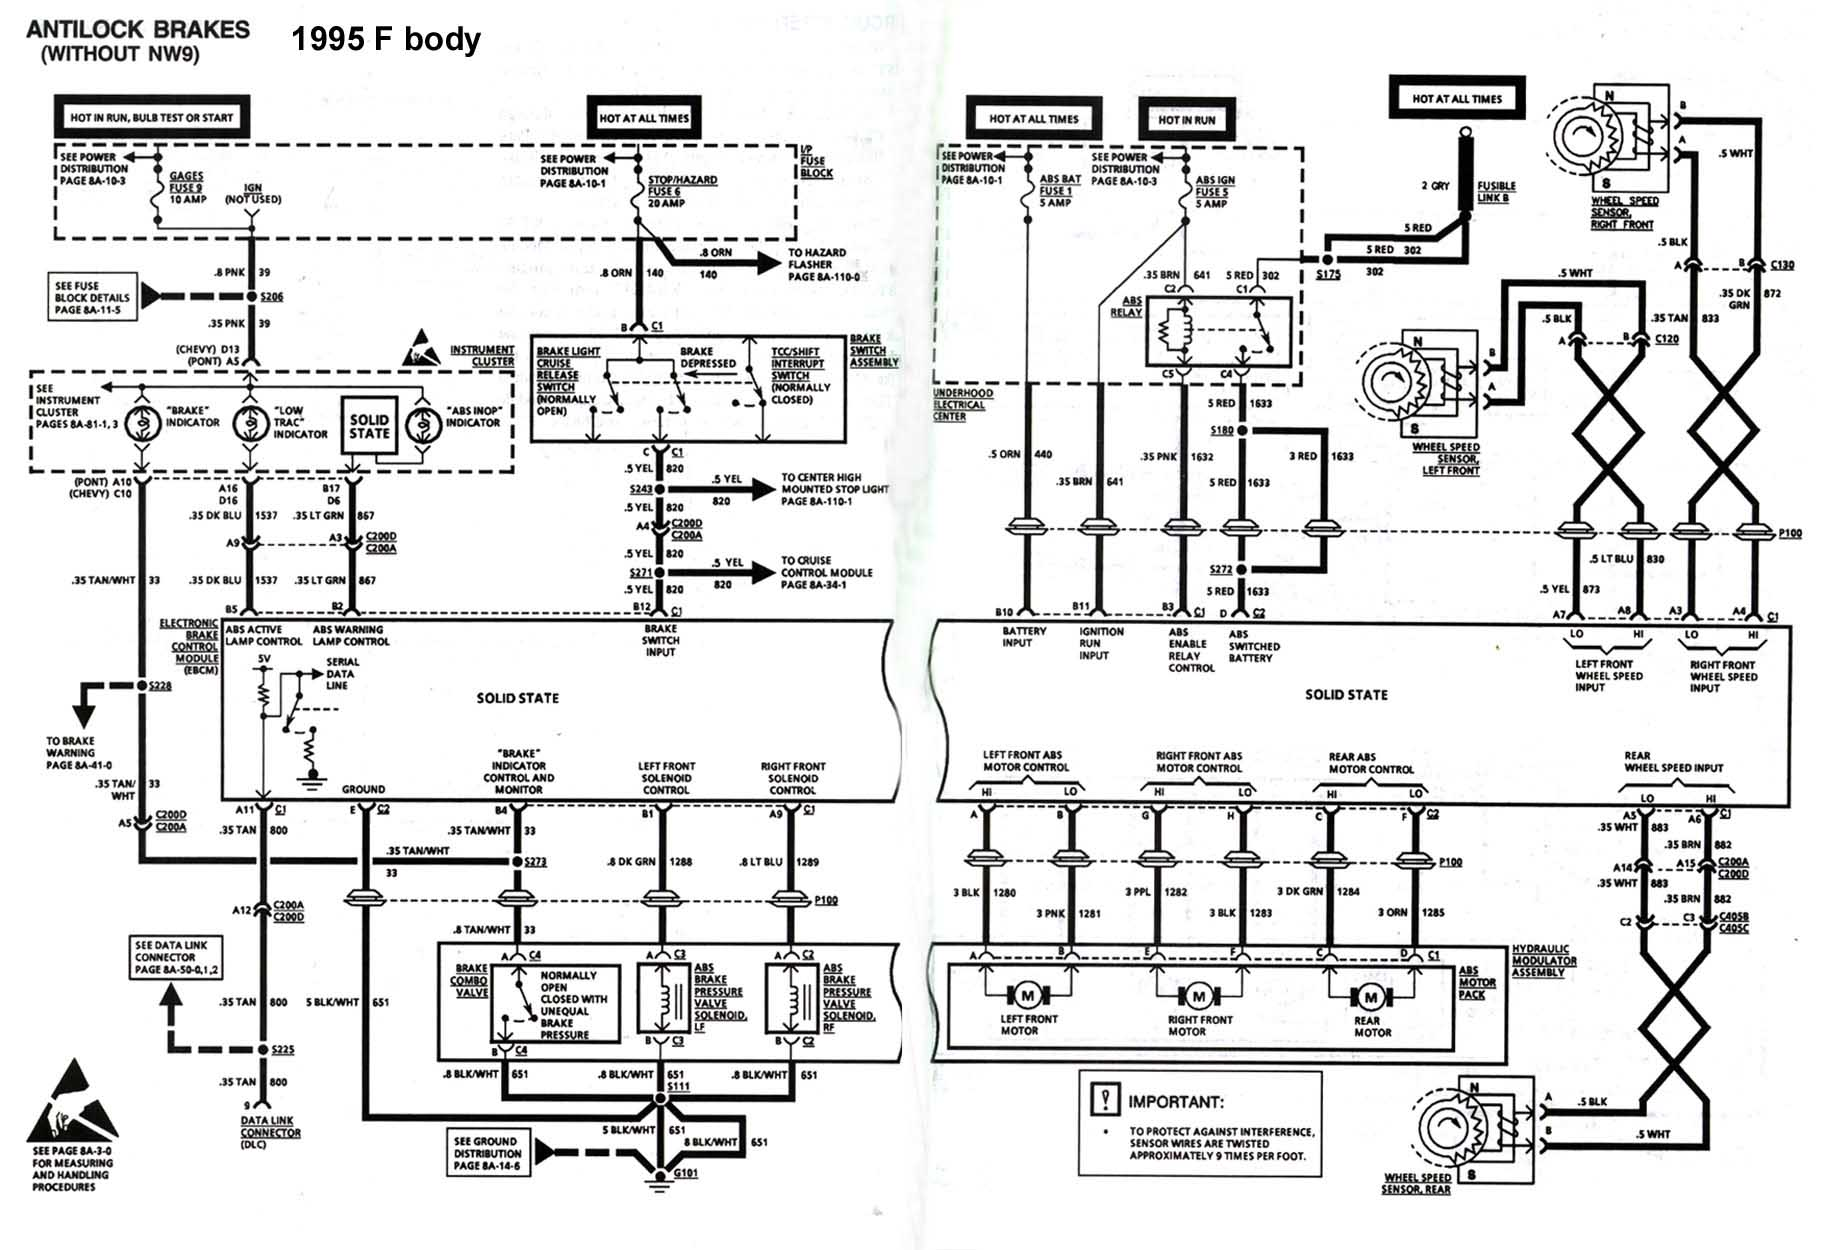 94 chevy 1500 wiring diagram motor single phase reversible 1995 4 1 artatec automobile de images gallery